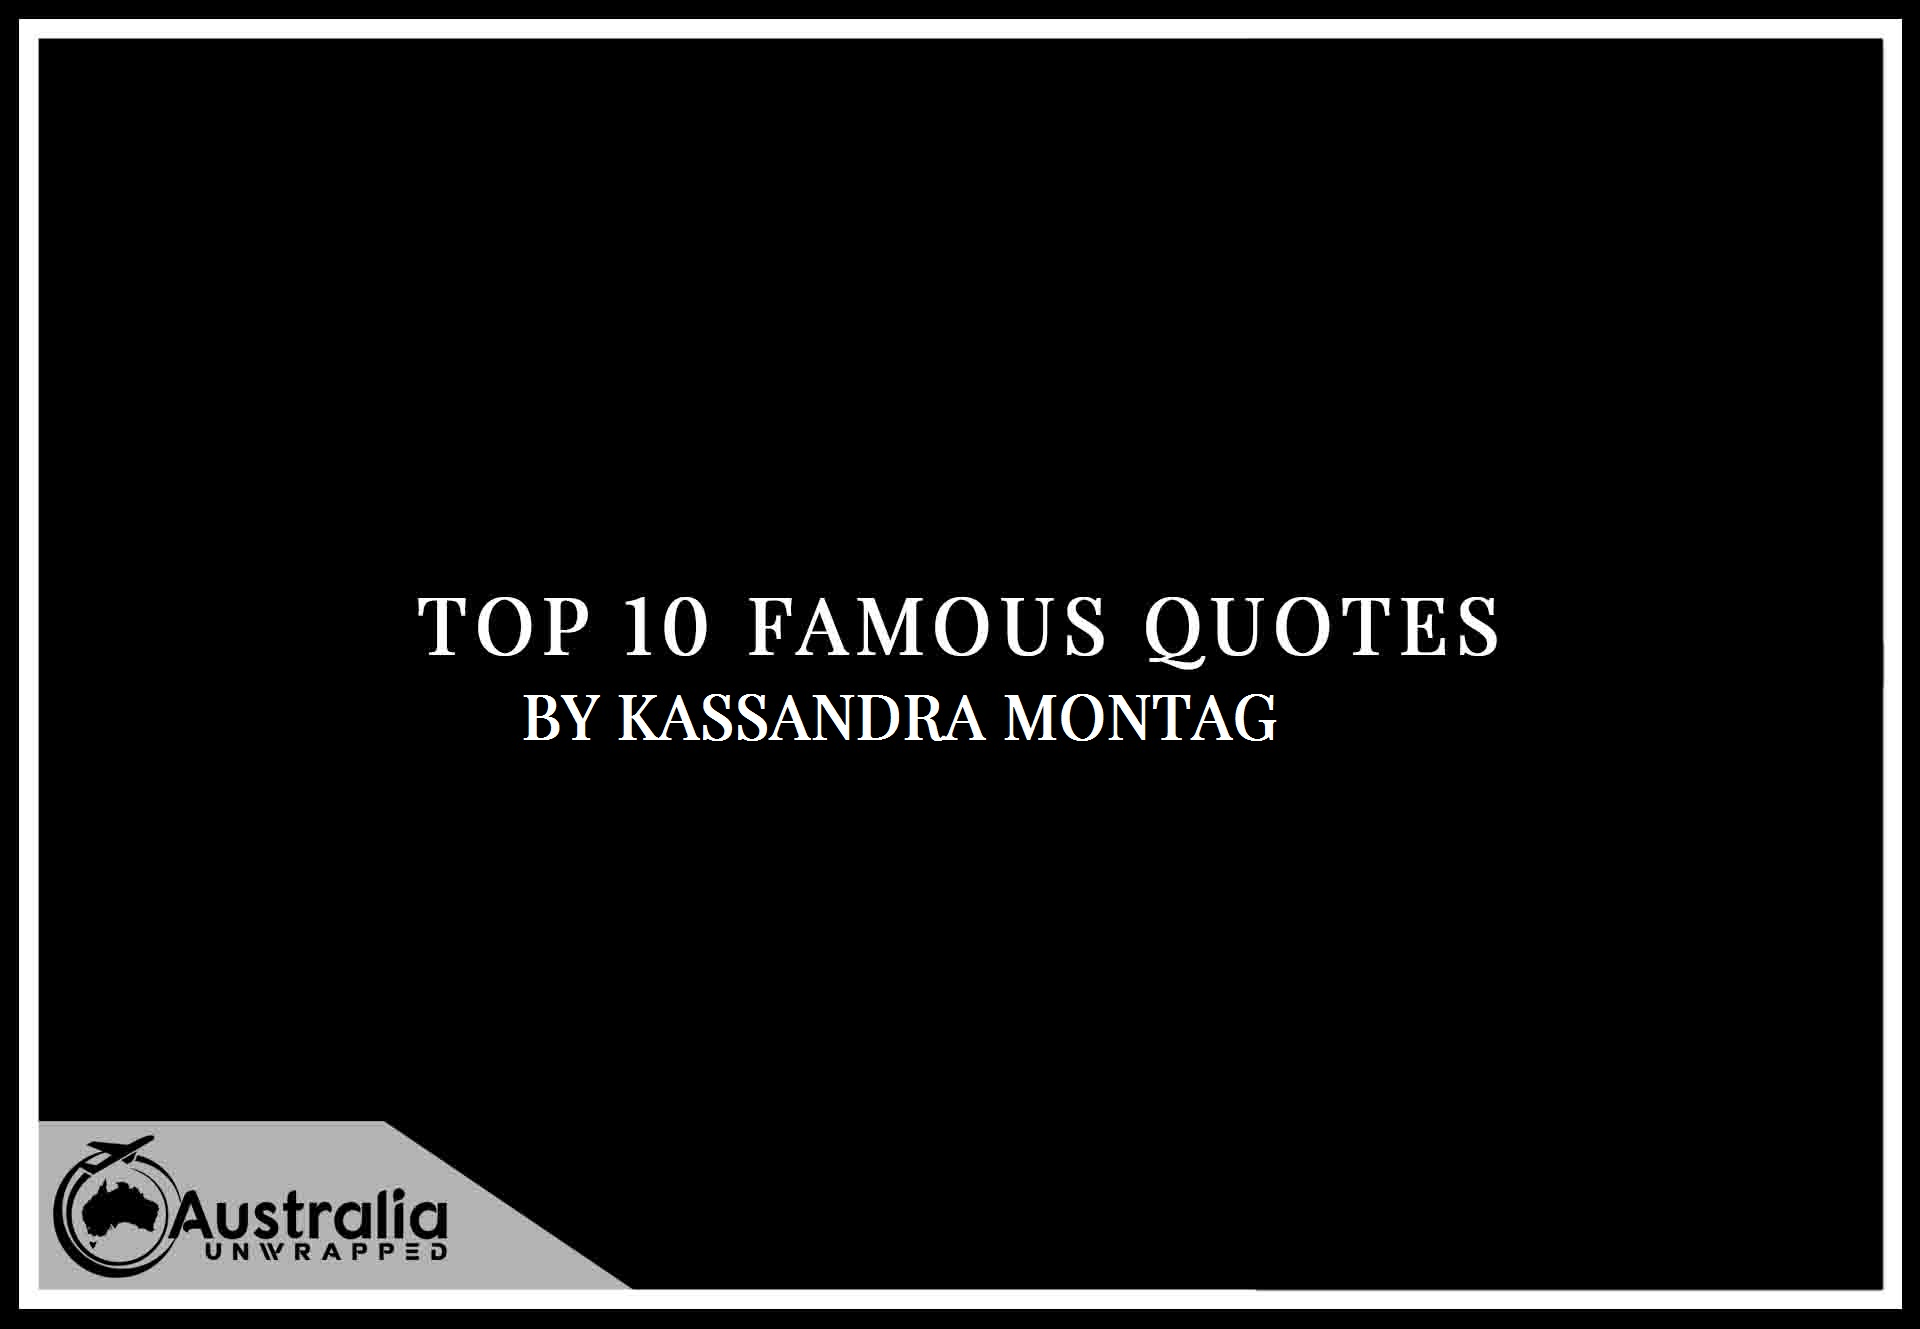 Kassandra Montag's Top 10 Popular and Famous Quotes